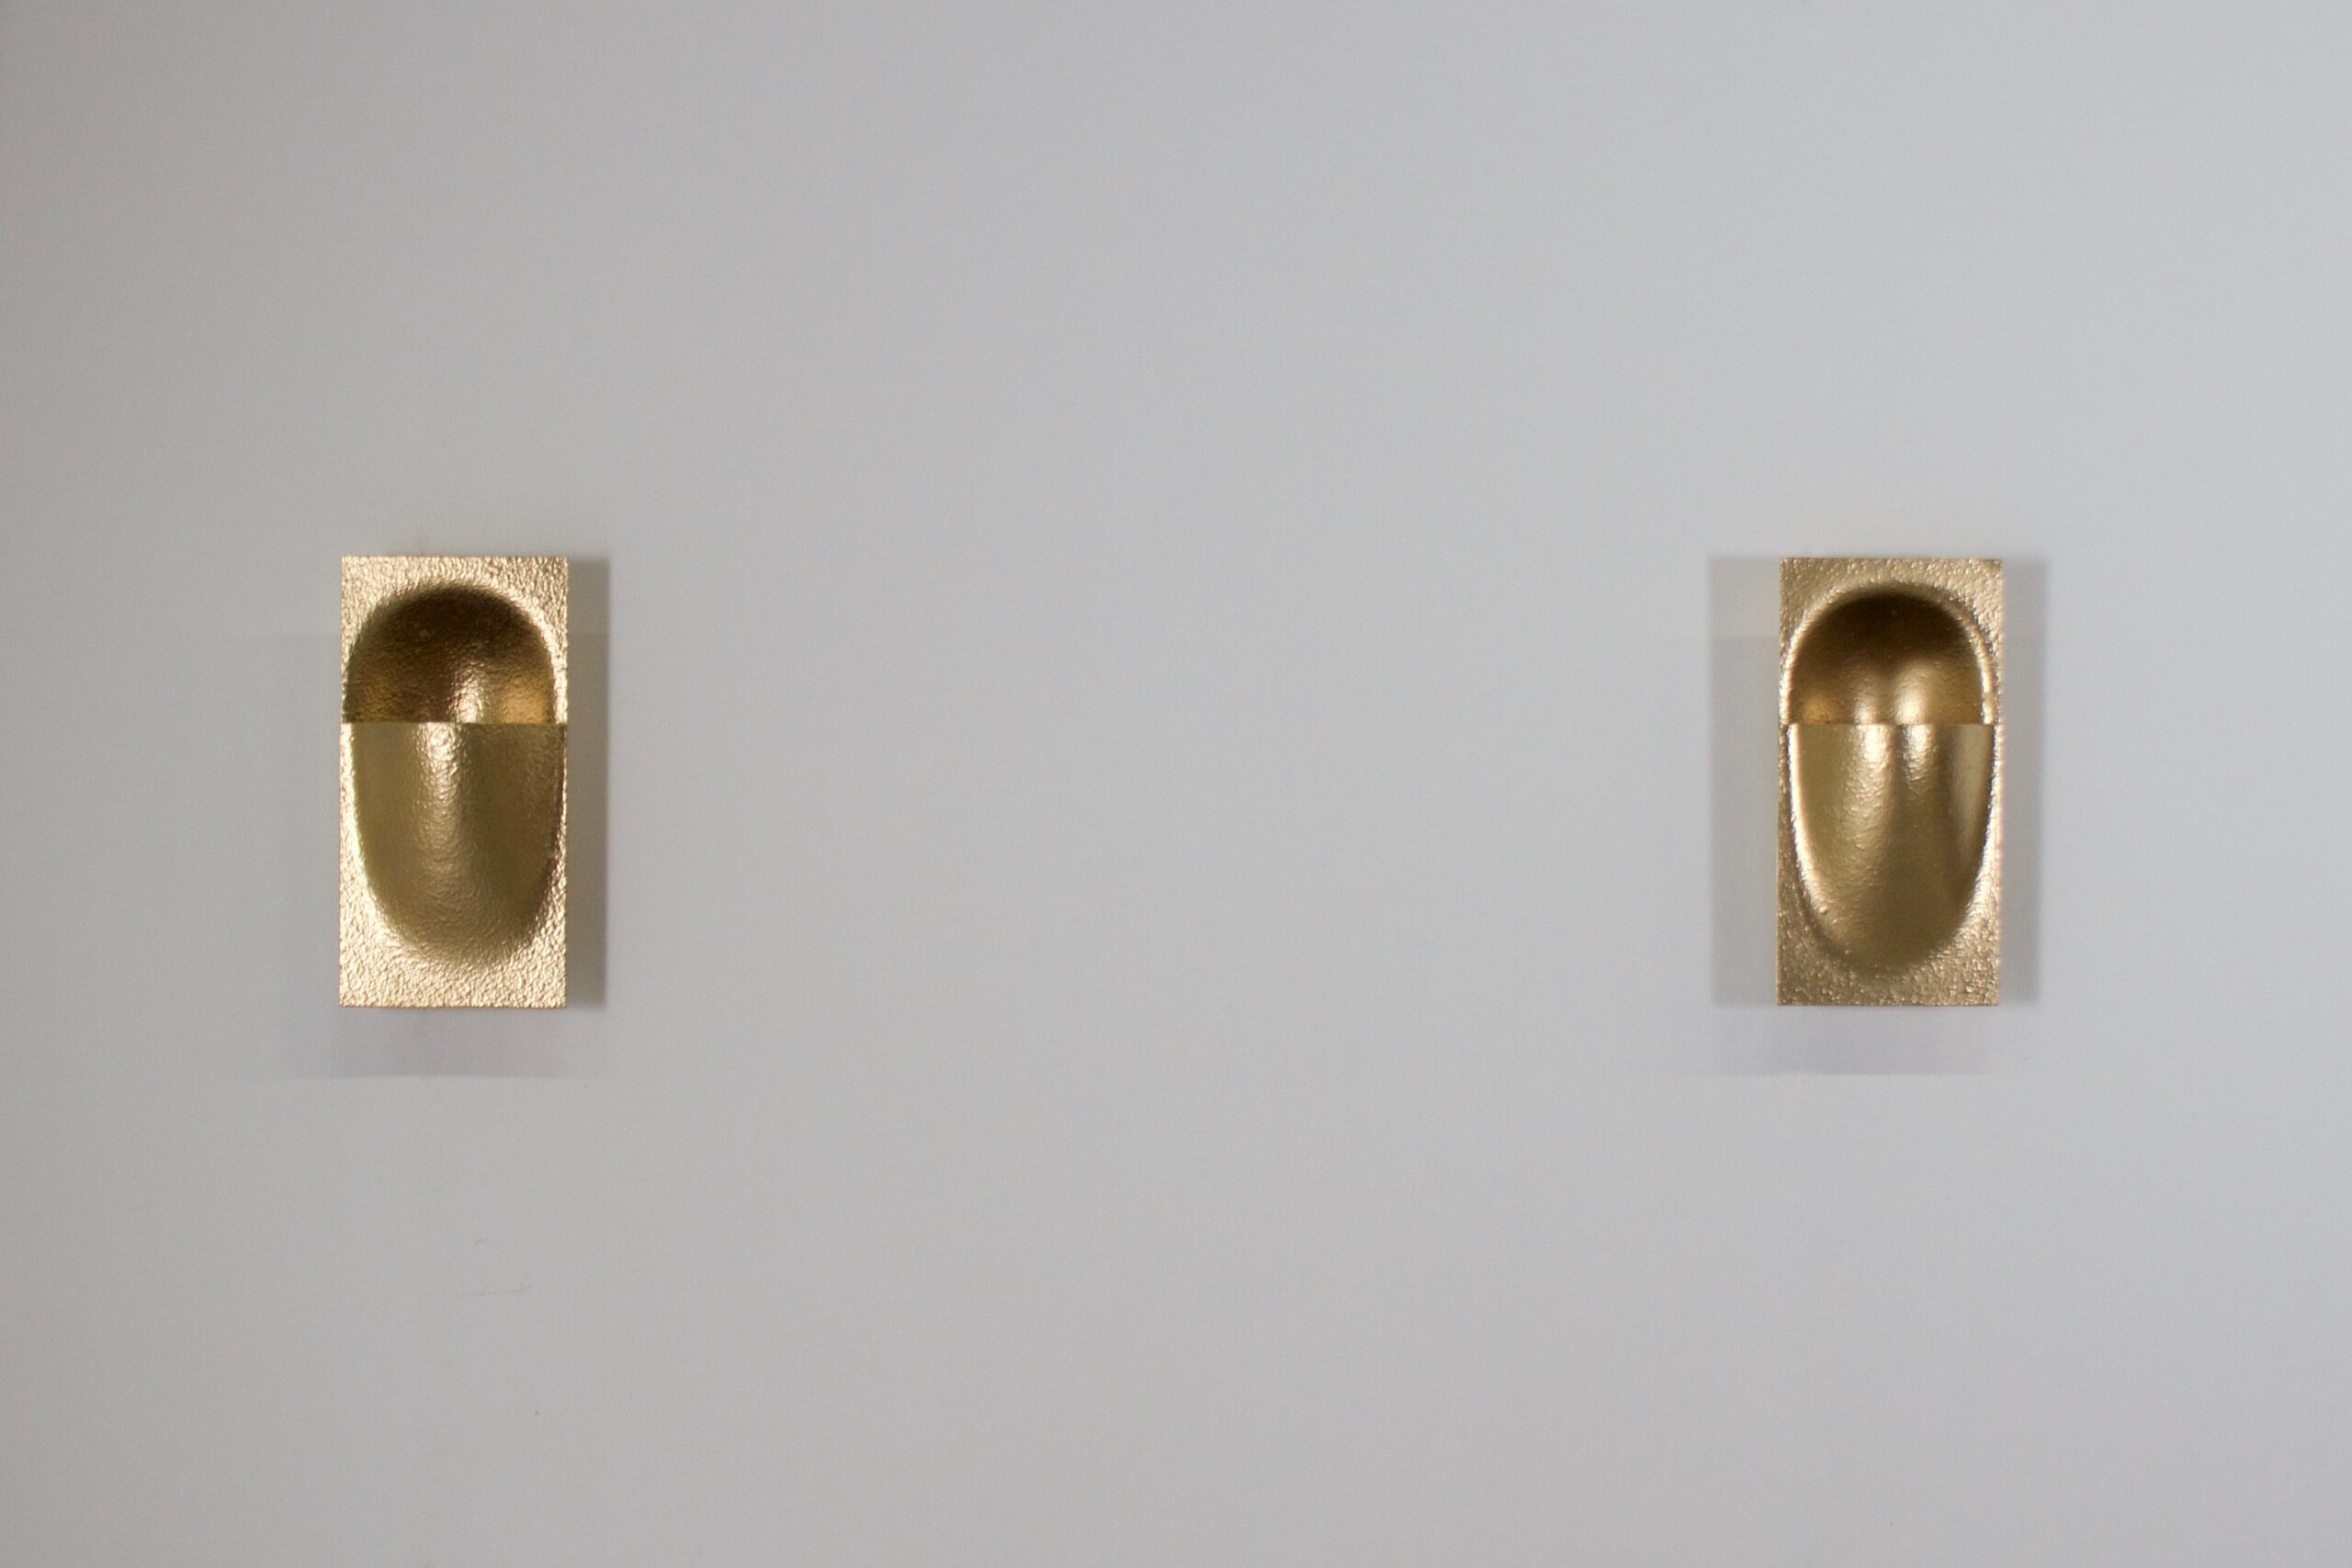 Gold Colored 'Balance' Sconces by Bertrand Balas for RAAK Amsterdam